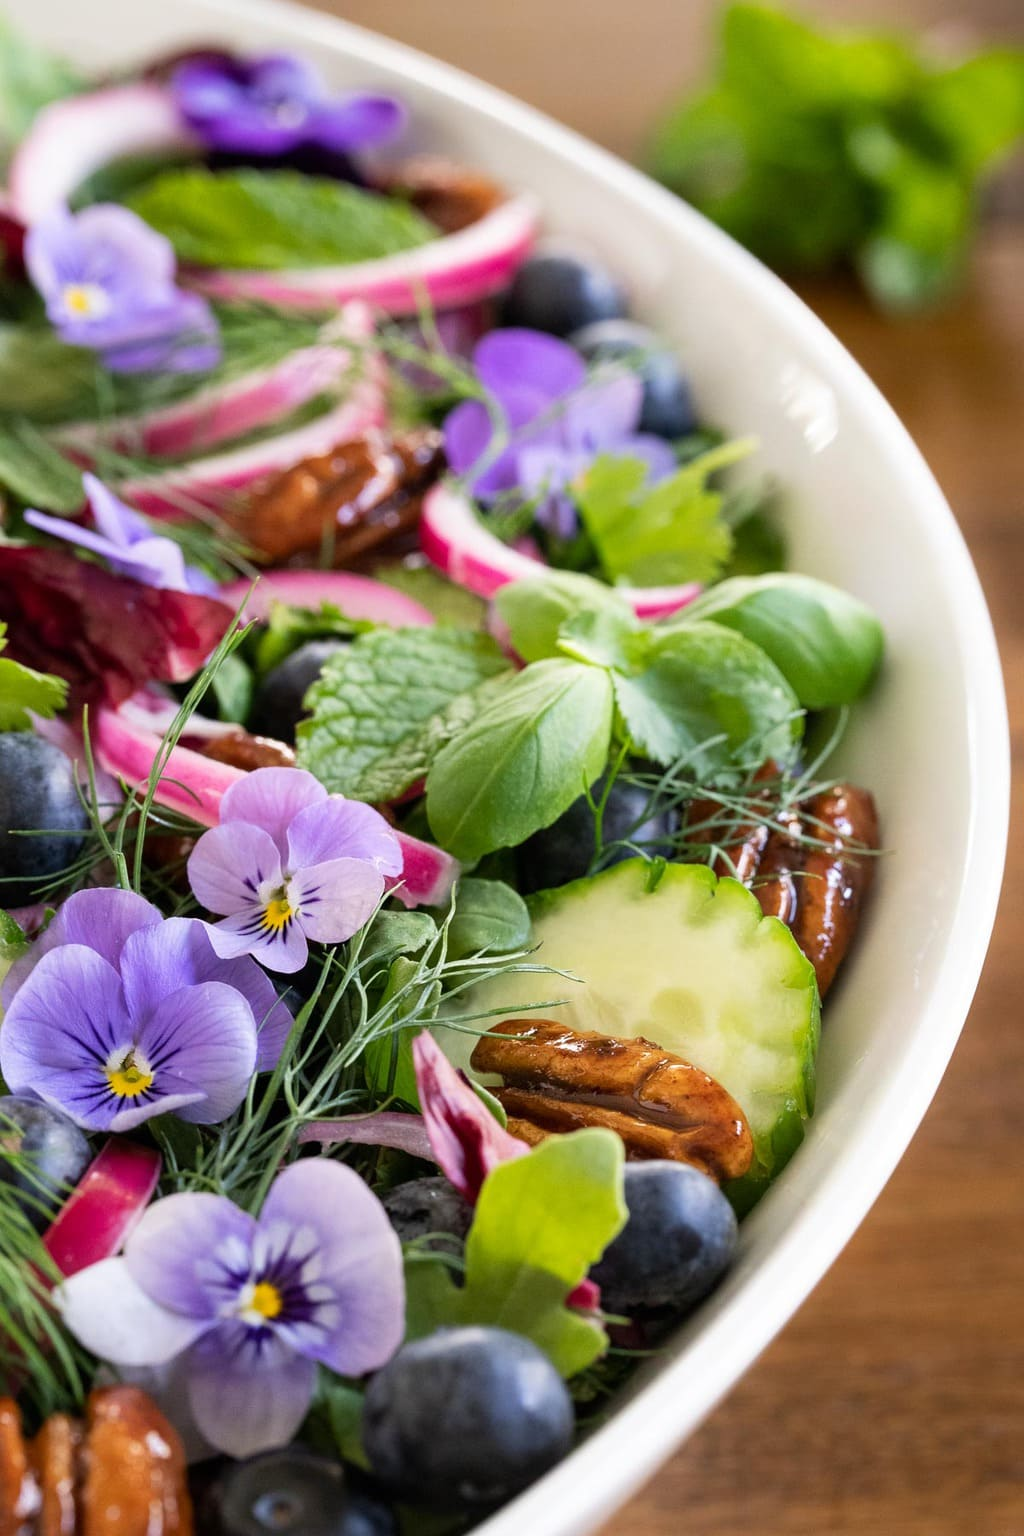 Vertical closeup photo of a Blueberry Arugula Herb Salad garnished with pickled onions, candied pecans and viola flowers.